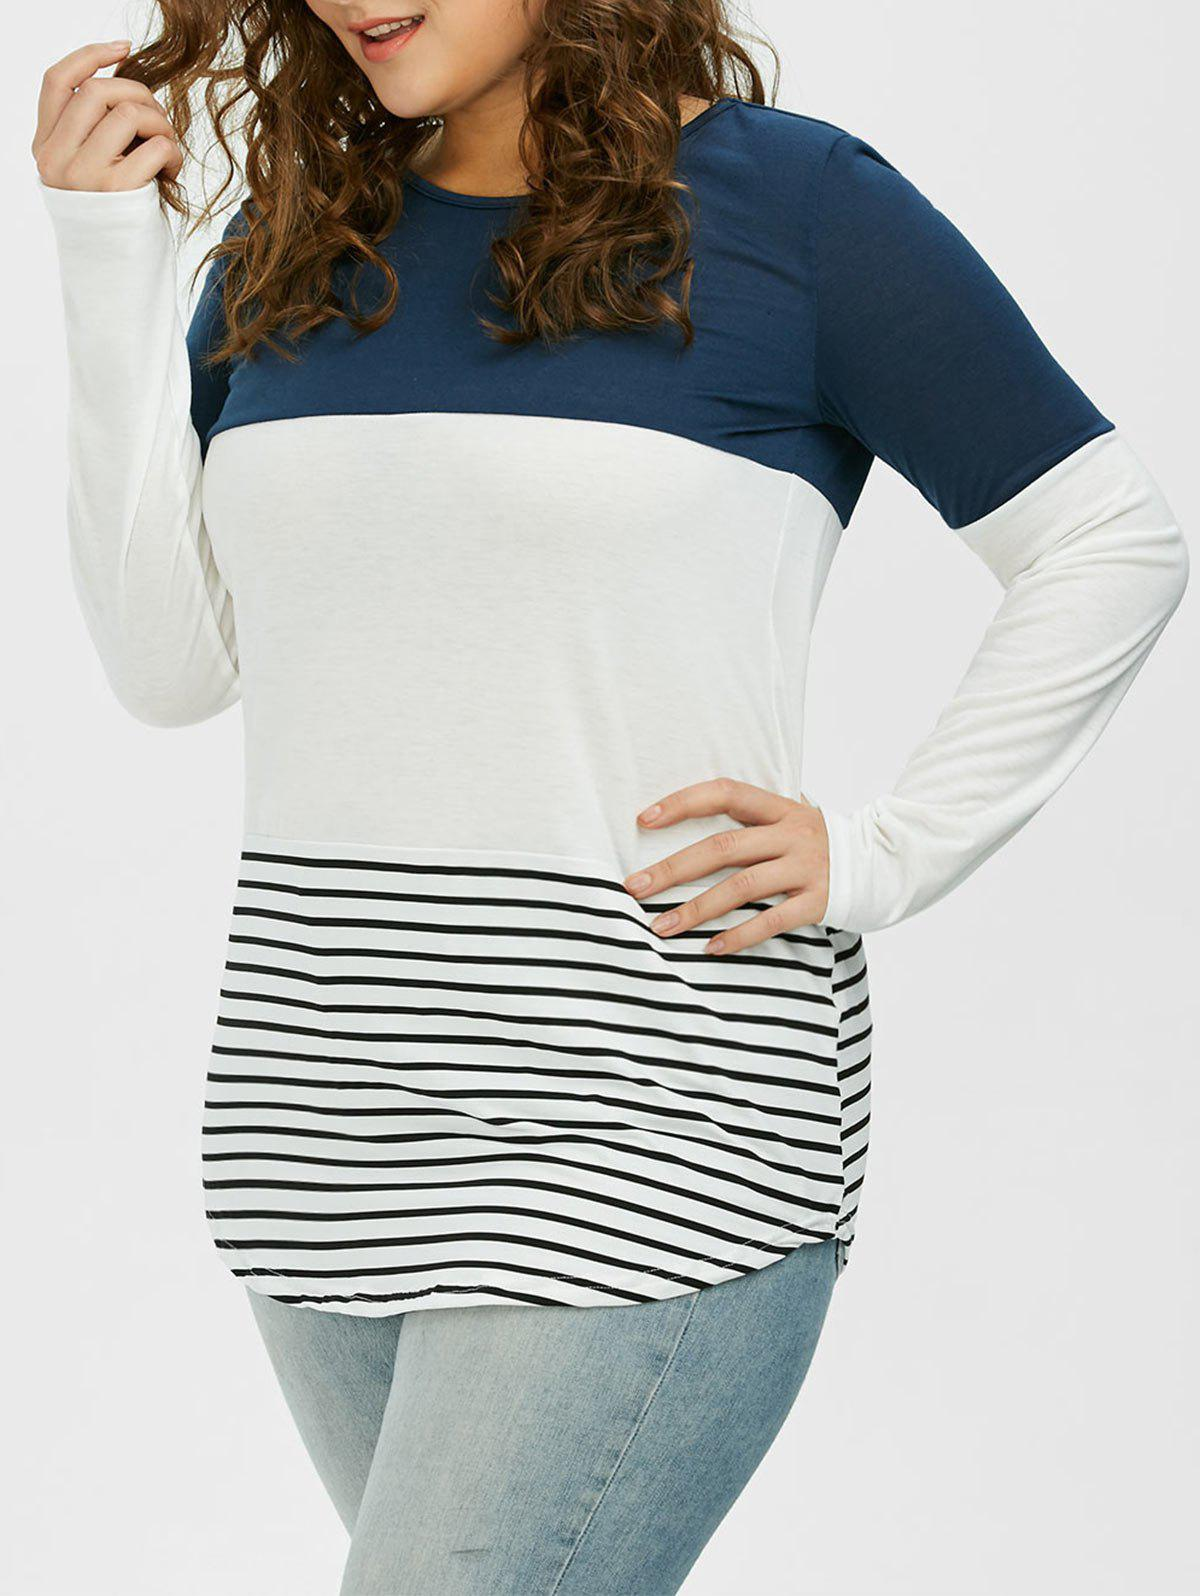 f2aedec2771 Color Block Stripe Plus Size Top - 4xl. rosegal